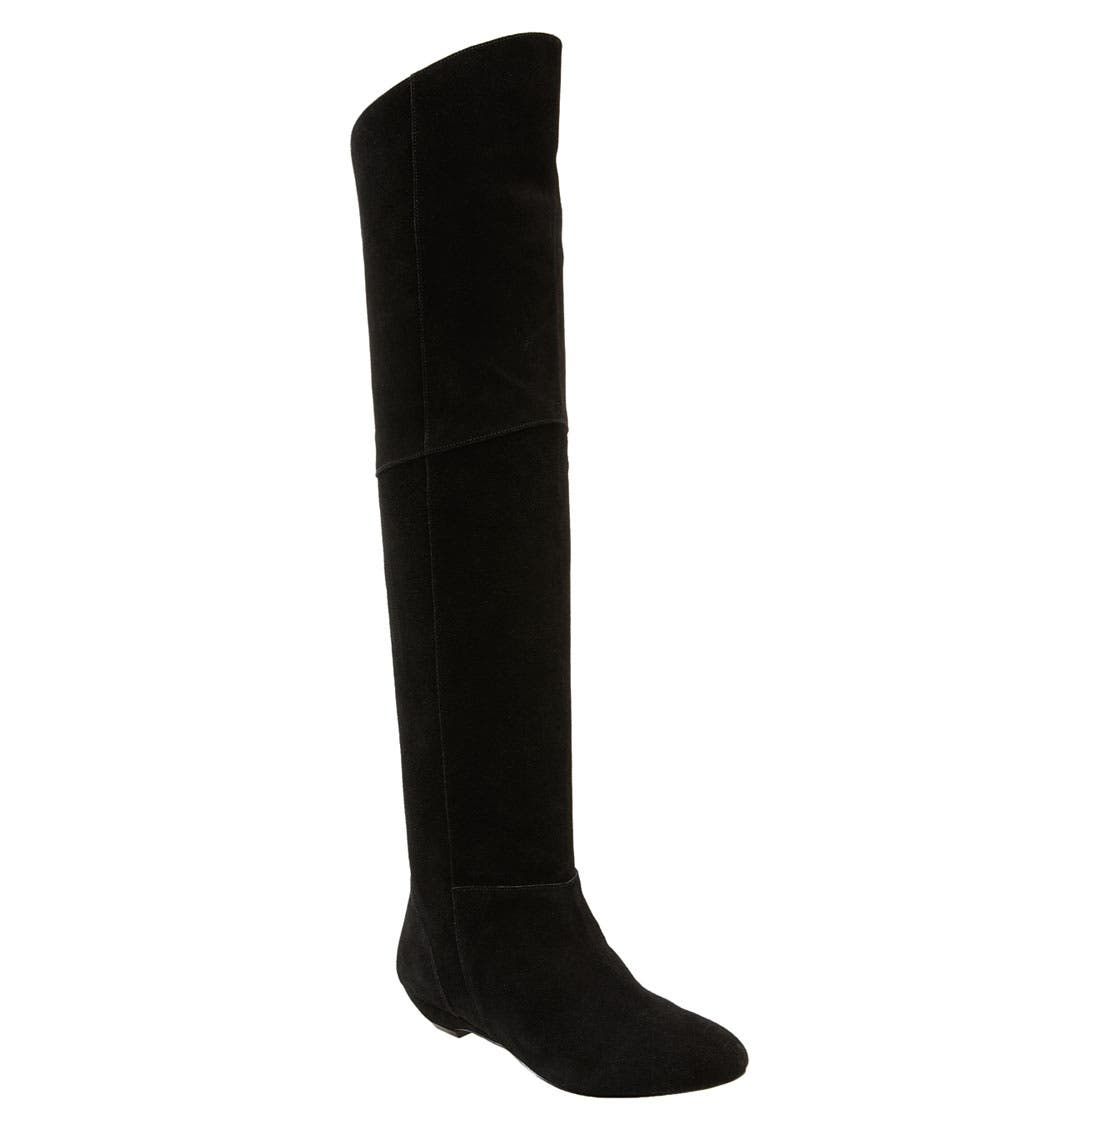 'Overrpas' Over the Knee Boot,                             Main thumbnail 1, color,                             Black Suede